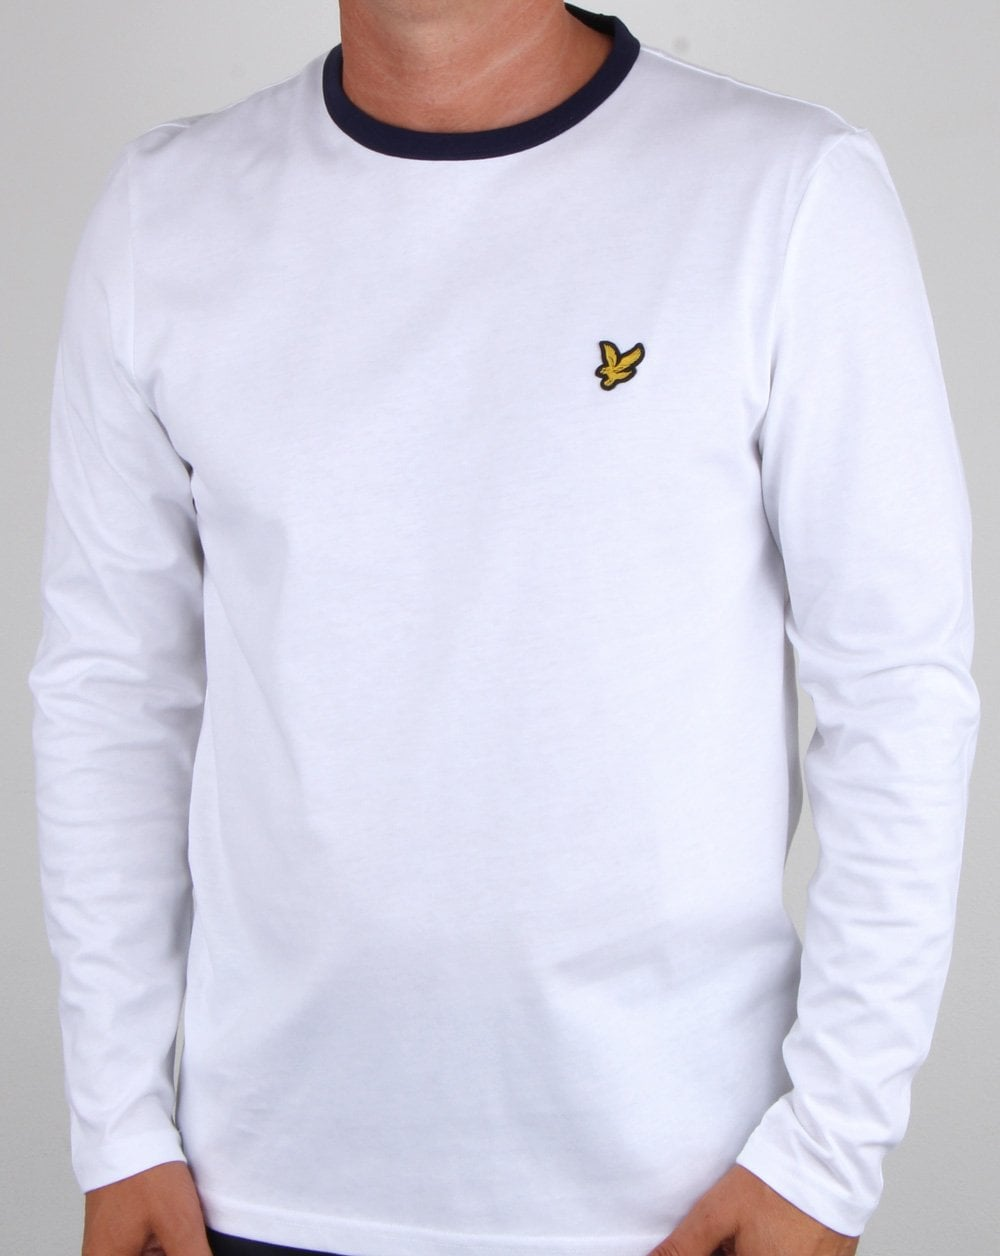 Mens Long Sleeve White T Shirt